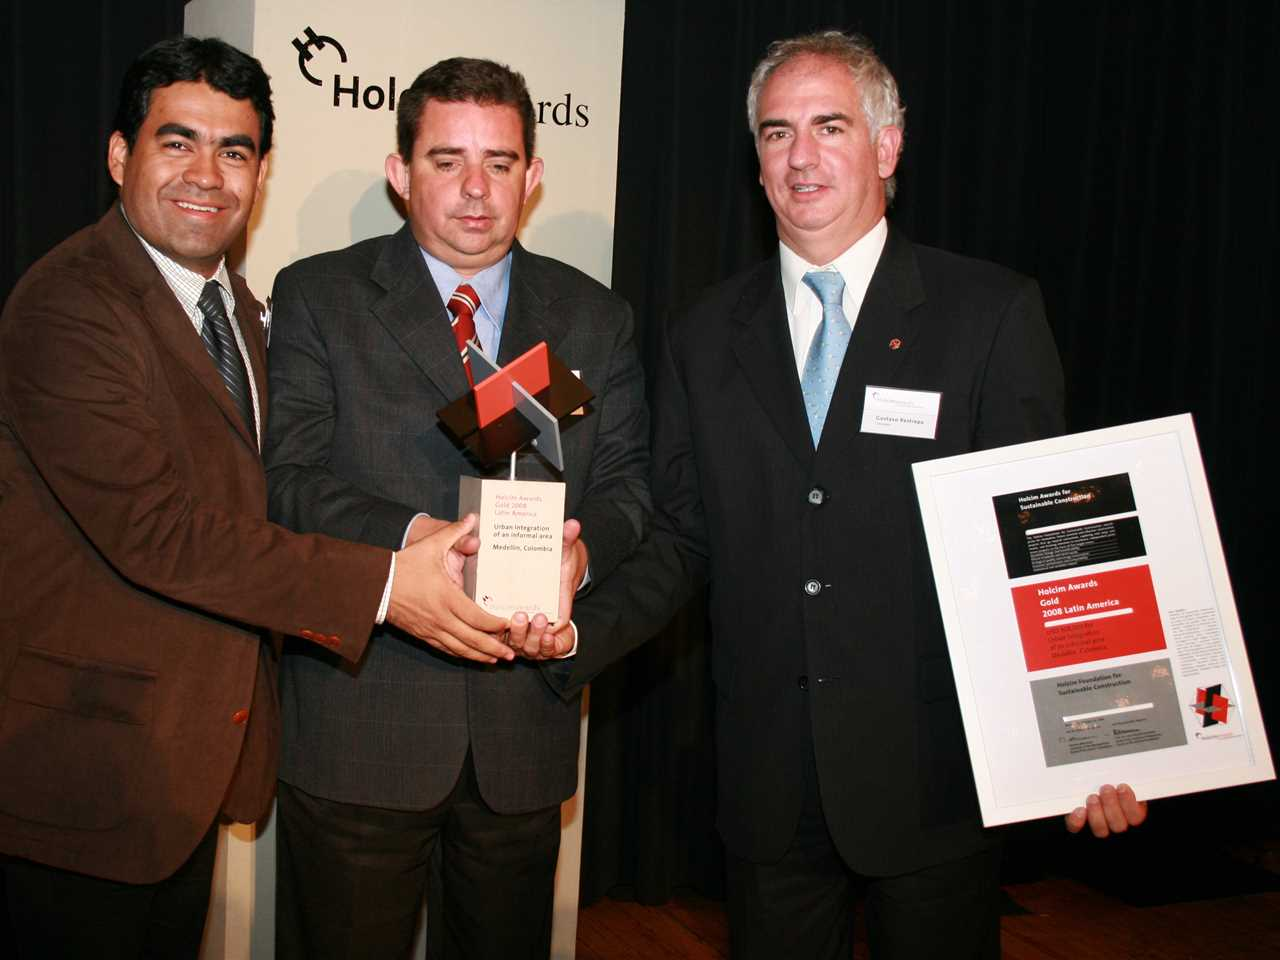 Holcim Awards ceremony for Latin America 2008 – Mexico City, Mexico